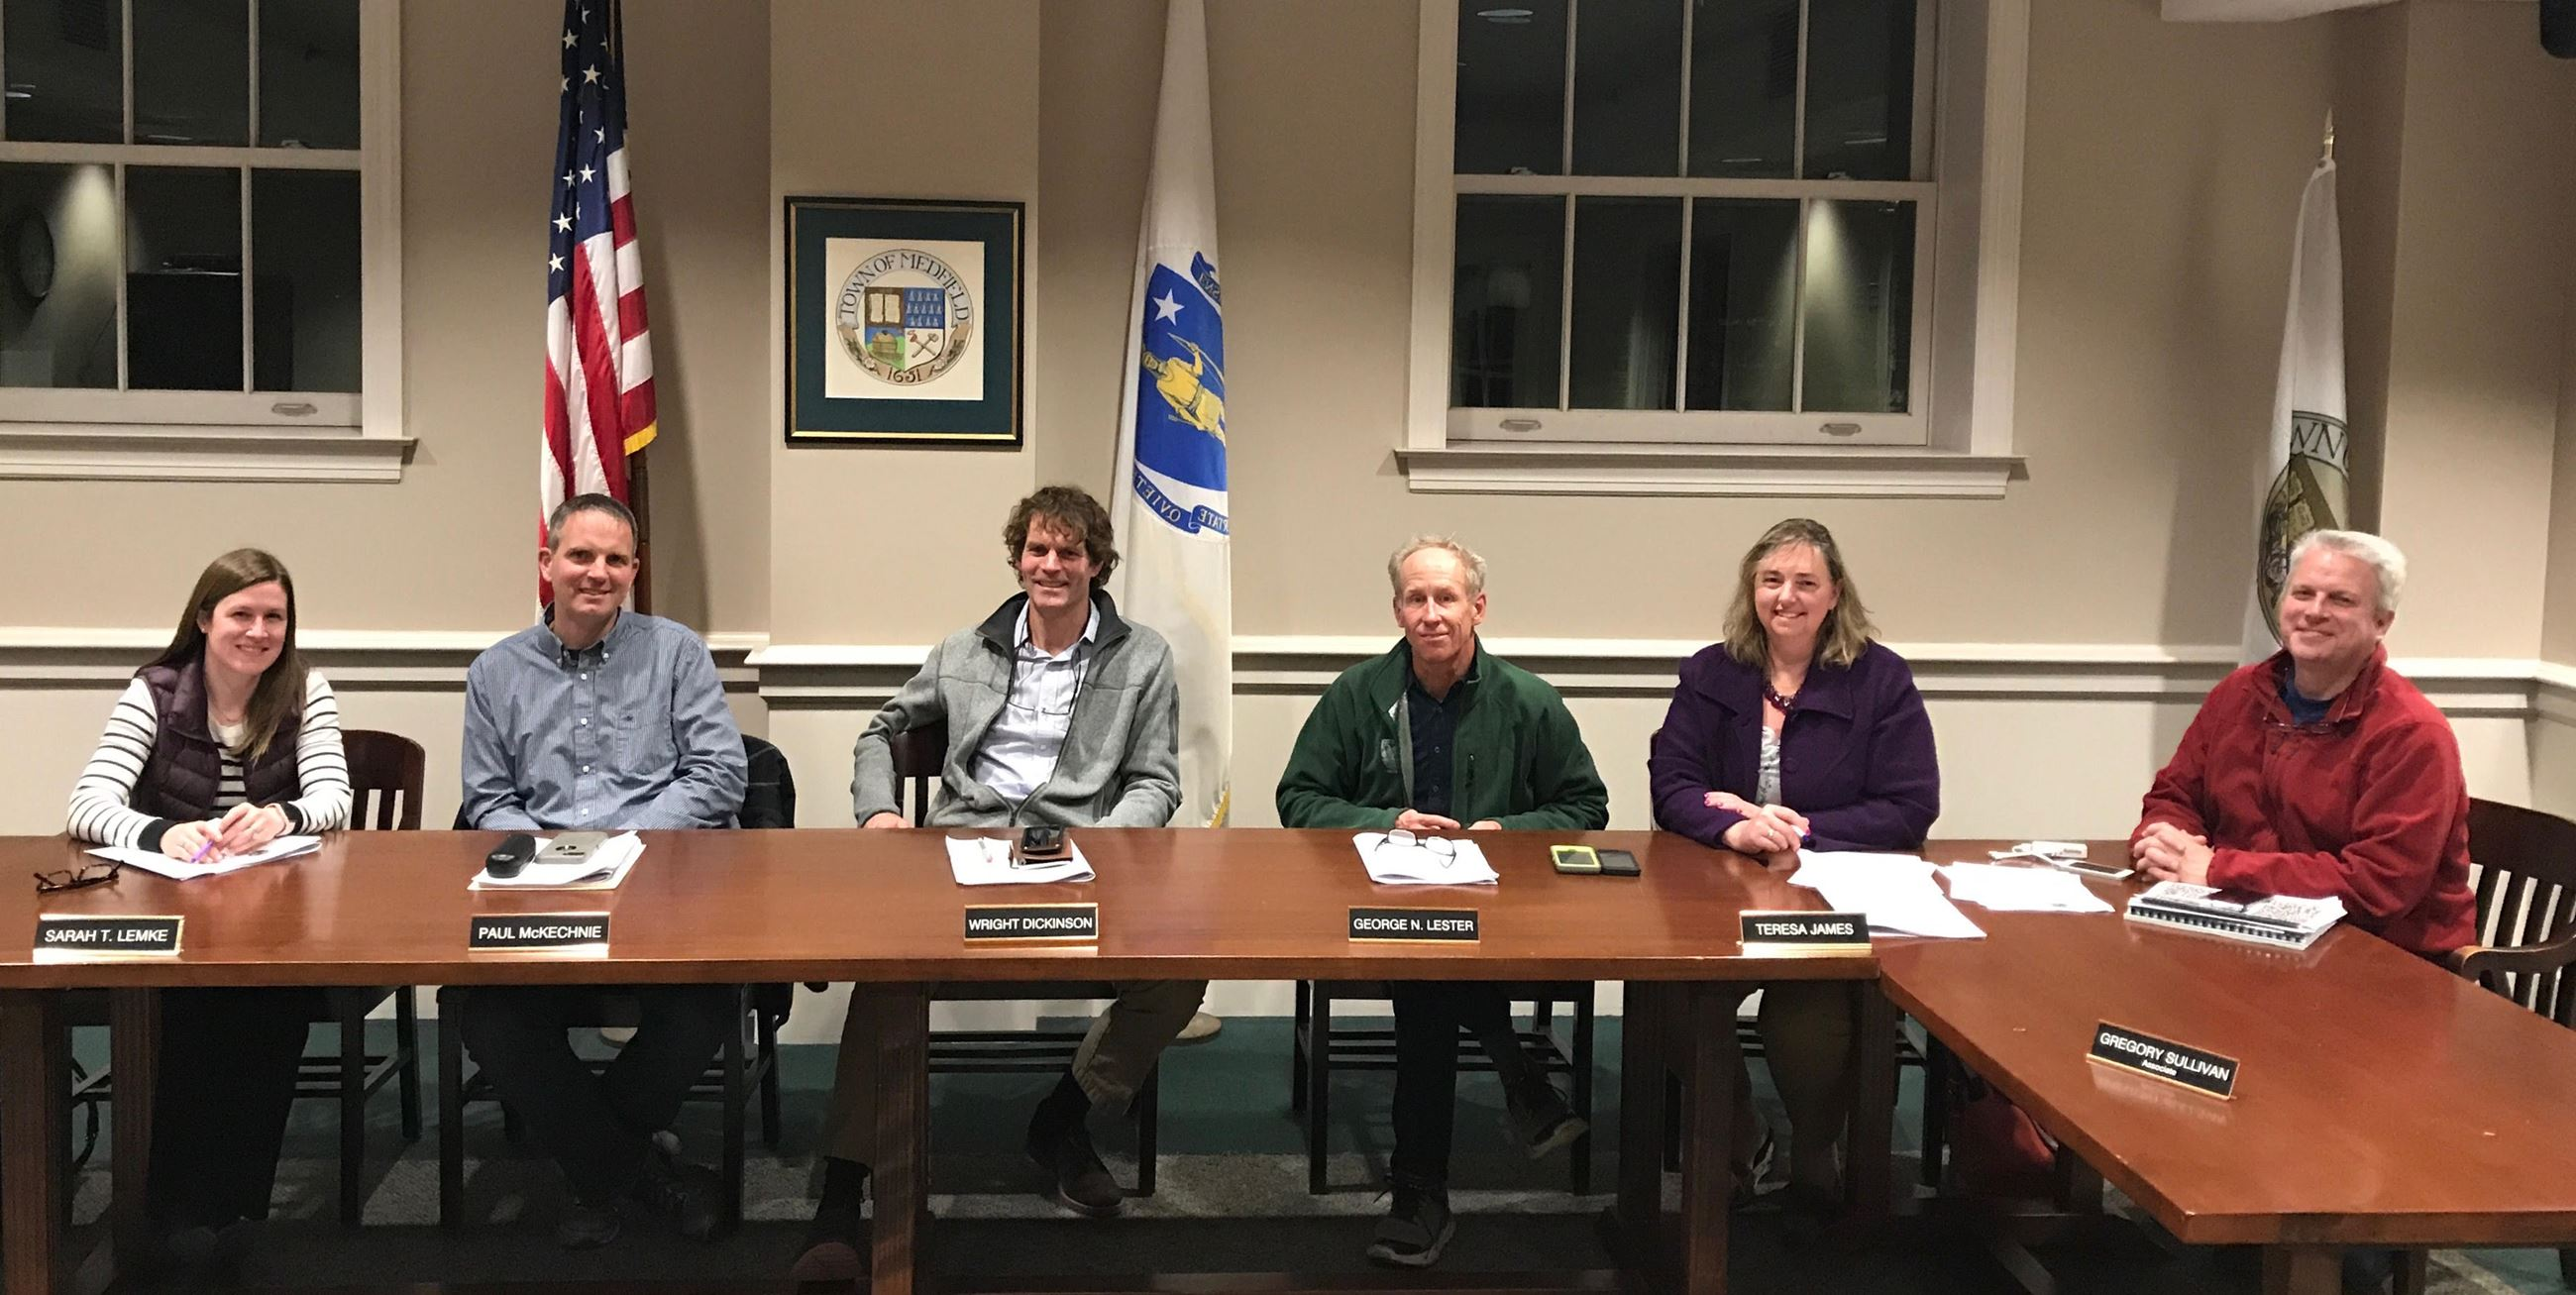 This is an image of the Planning Board sitting at a table taken on May 1, 2017. Members shown are: L